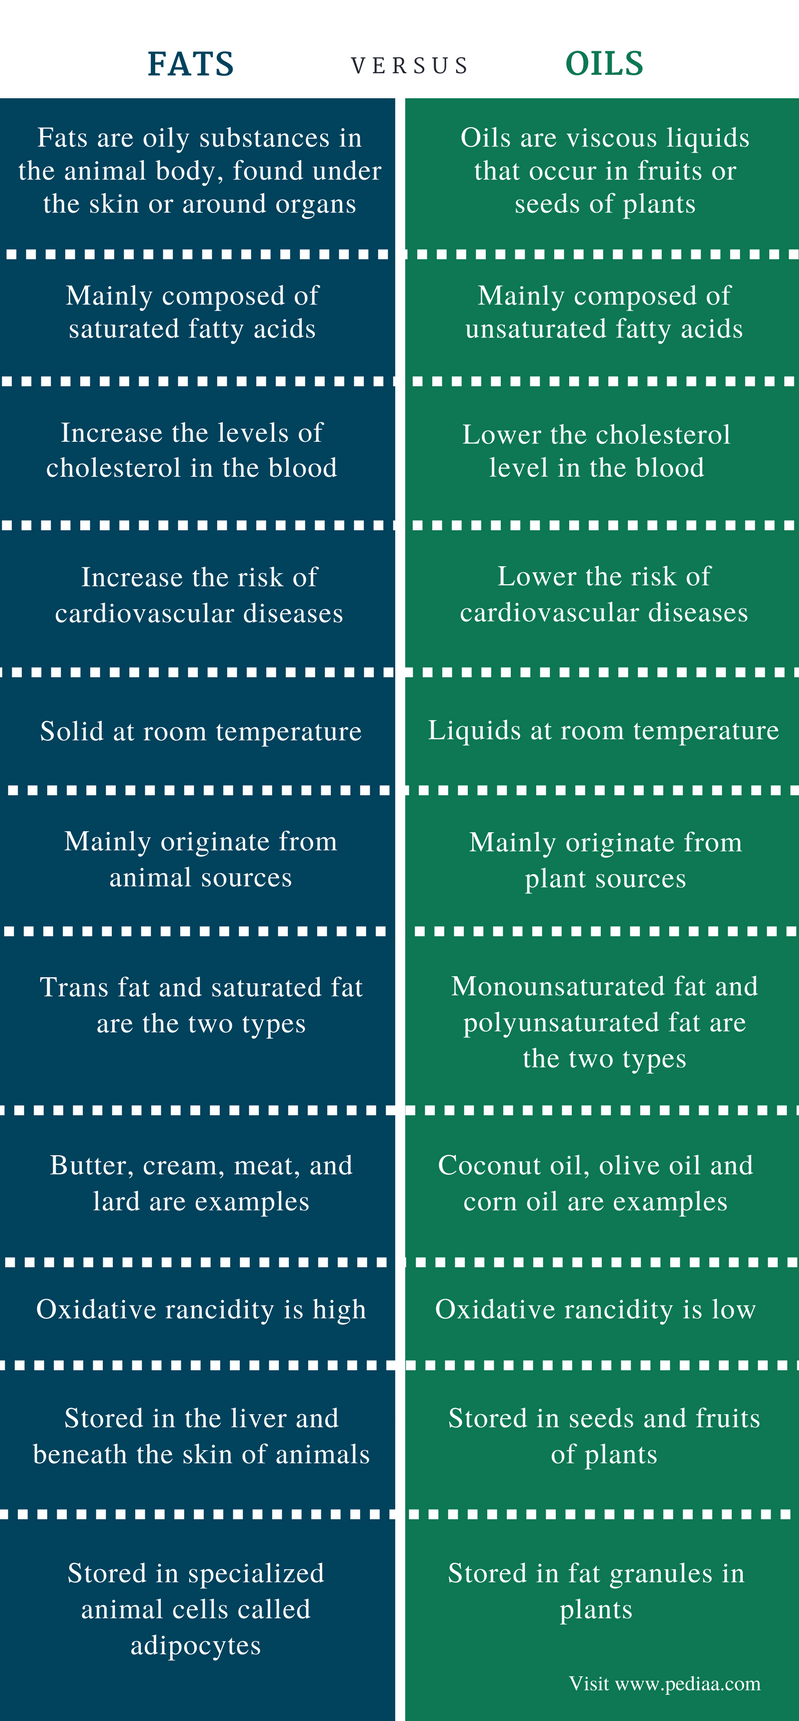 Difference Between Fats and Oils - Comparison Summary